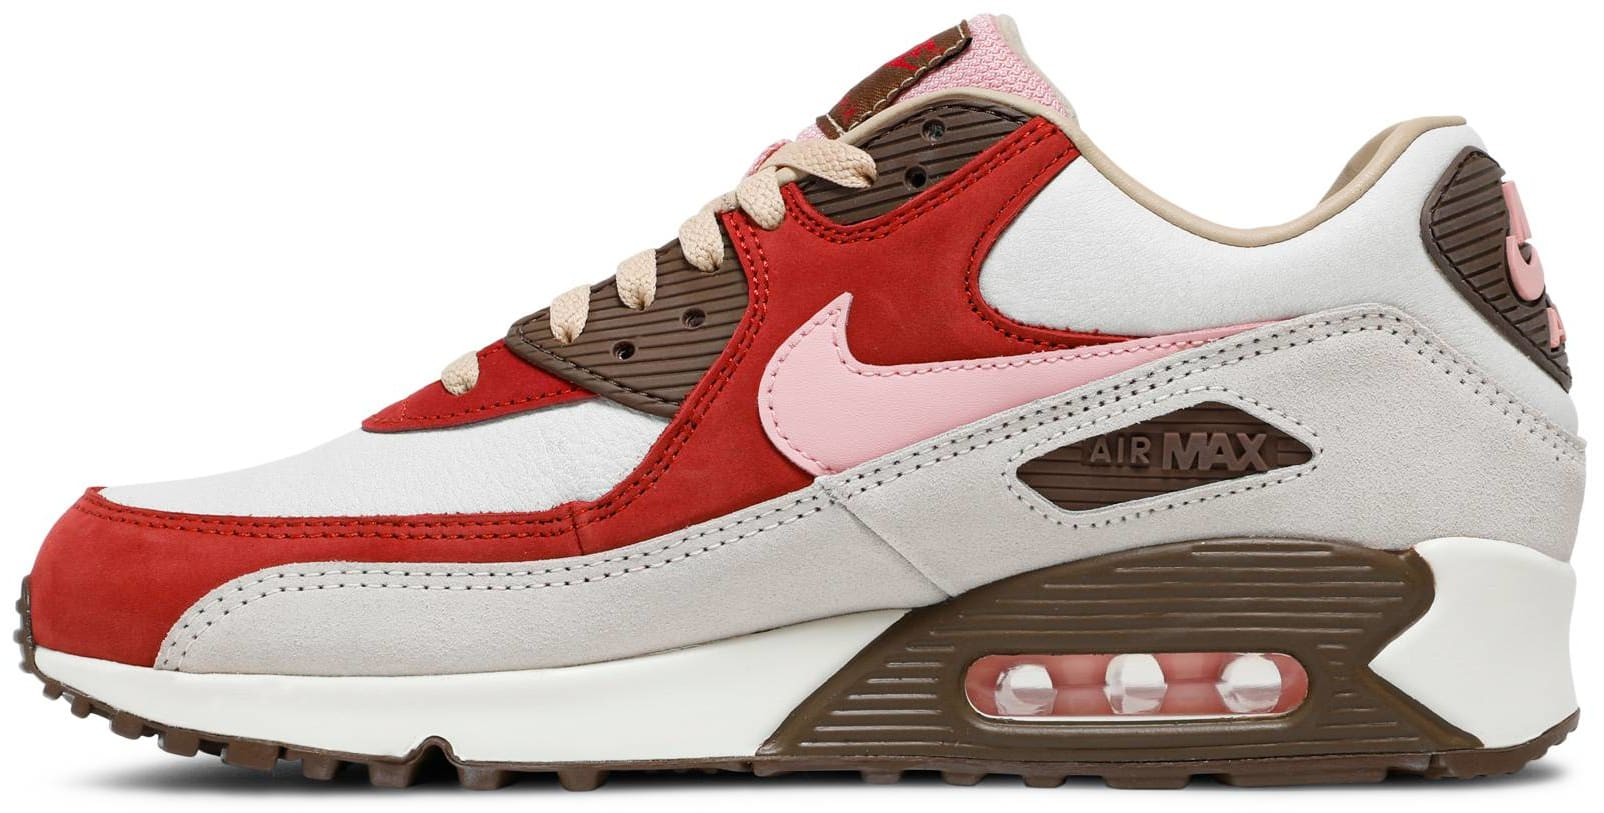 Nike Air Max 90 'Bacon' 2021 CU1816-100 Medial